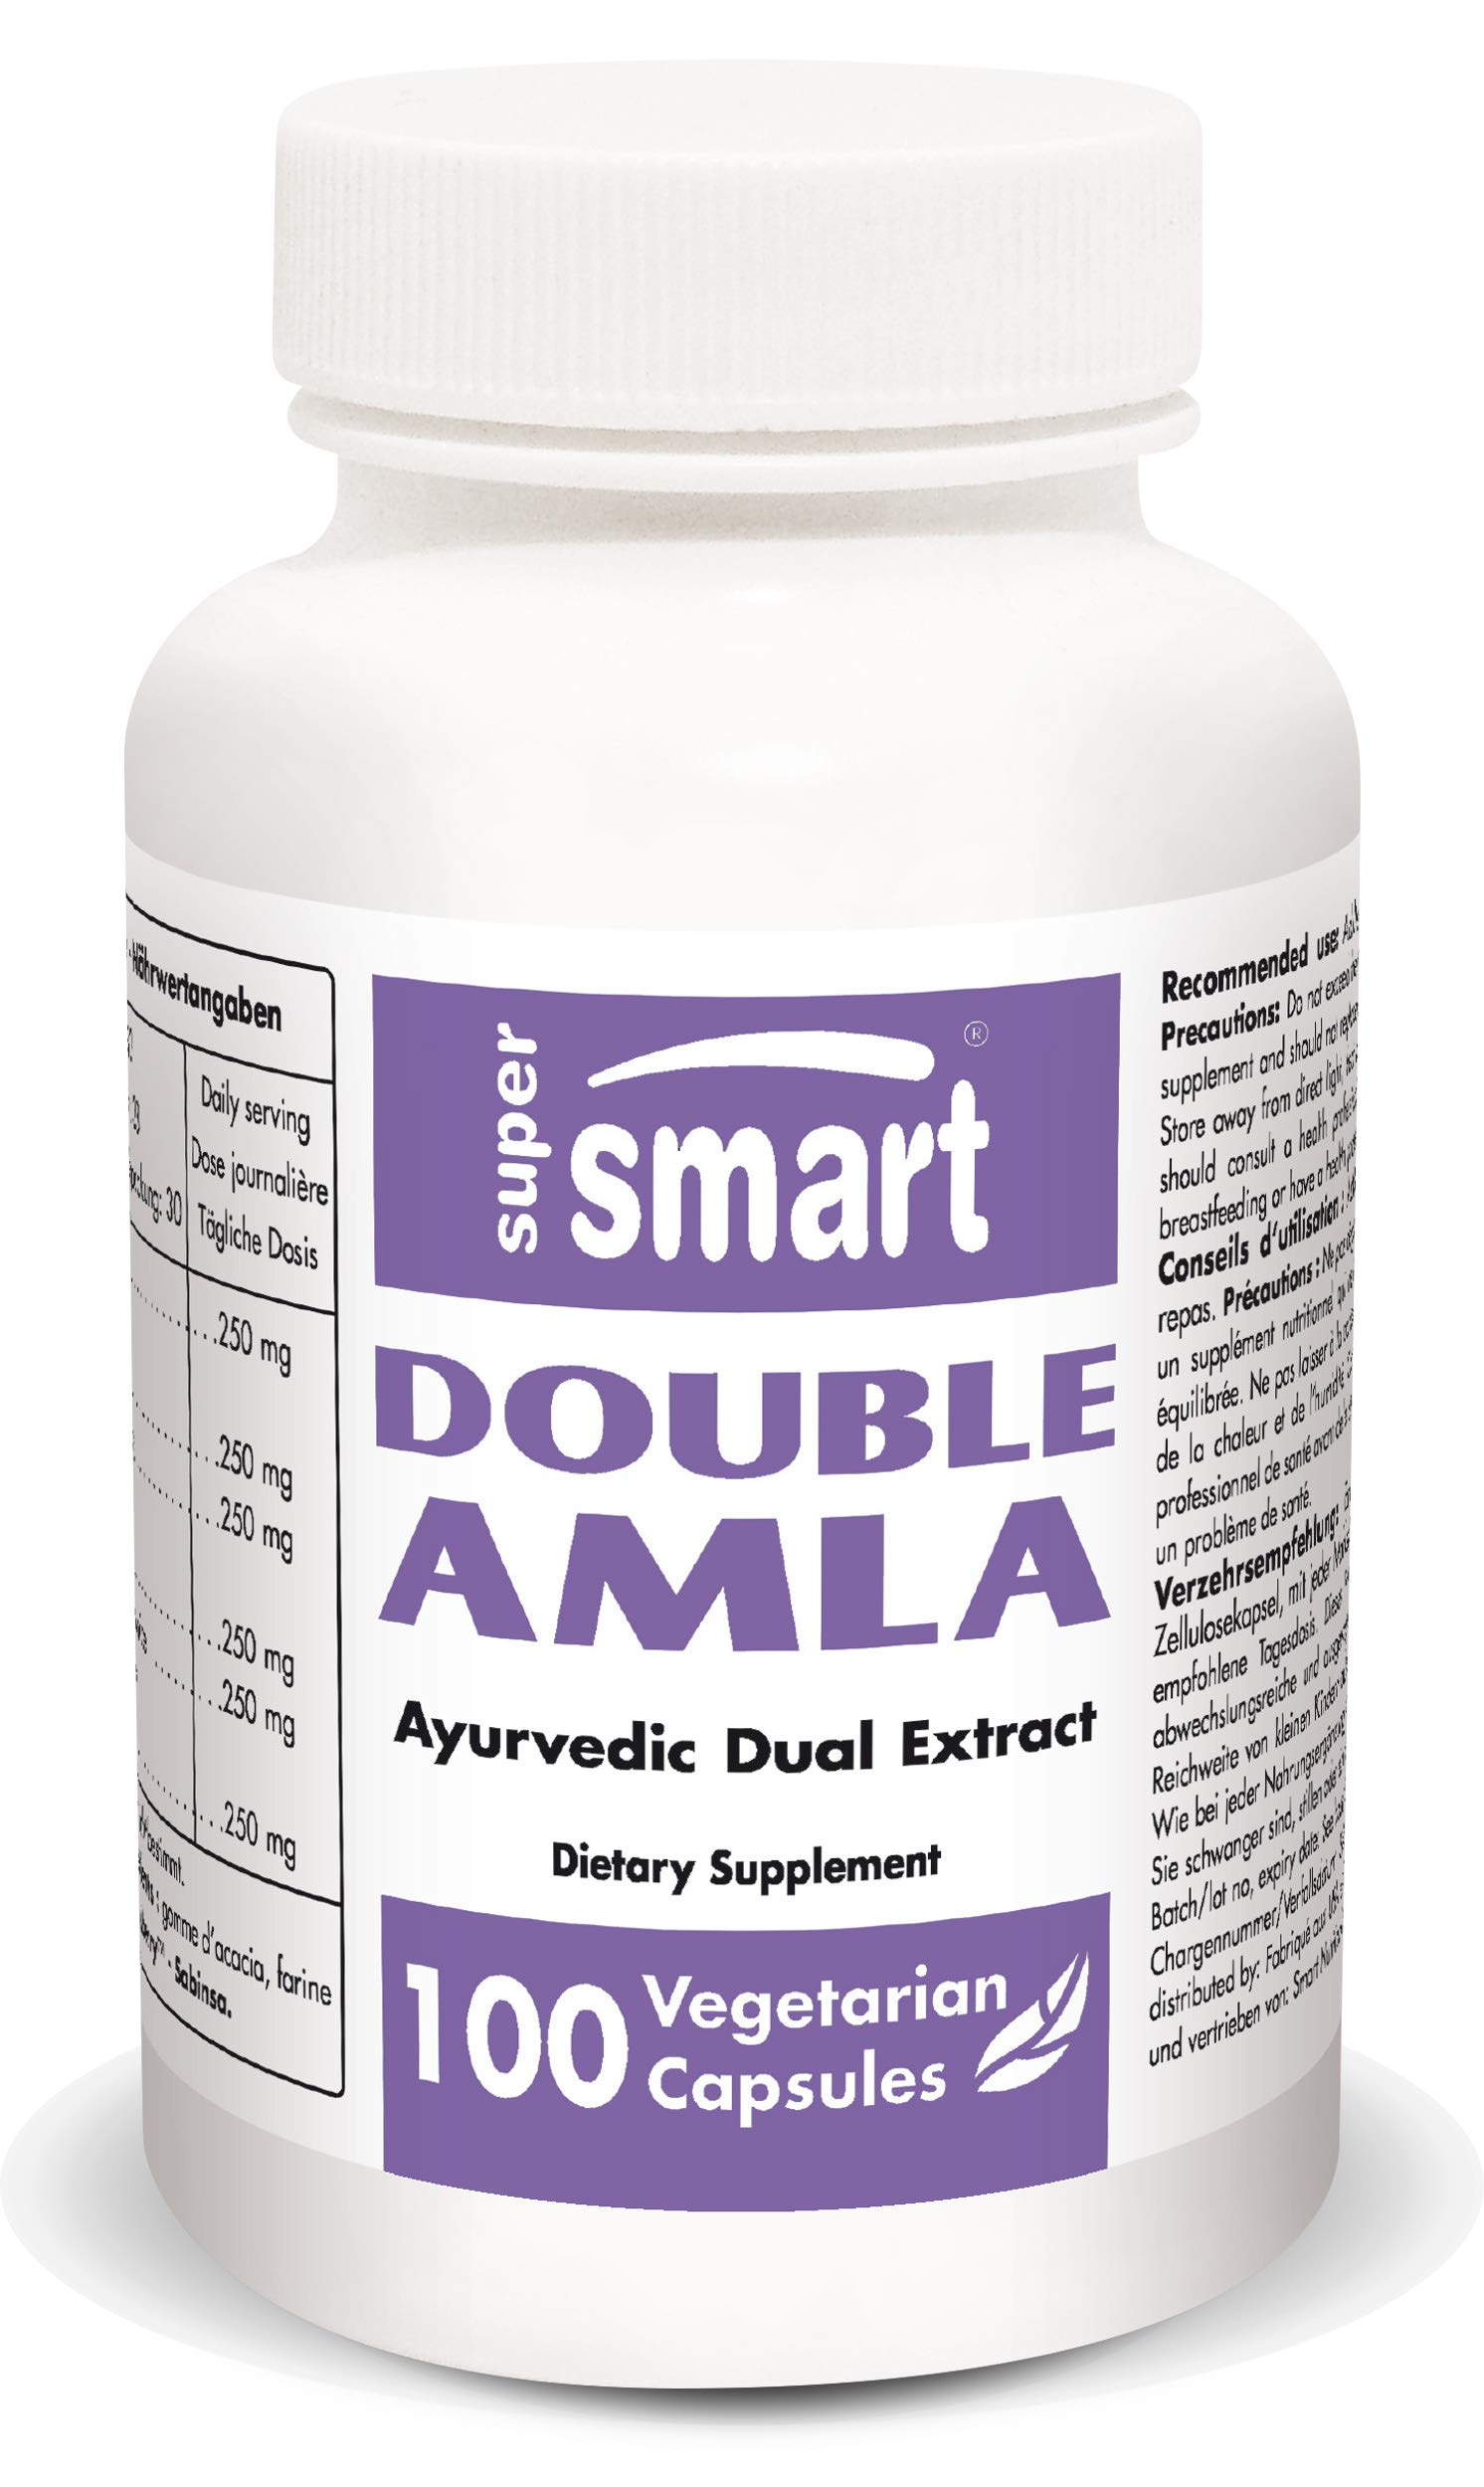 Supersmart - Double Amla - Extract of Emblica Officinalis Standardized to 45% Tannins - Saberry™ - Support Digestive Health - Anti Aging & Anti Oxidant Supplement | Non-GMO - 100 Vegetarian Capsules